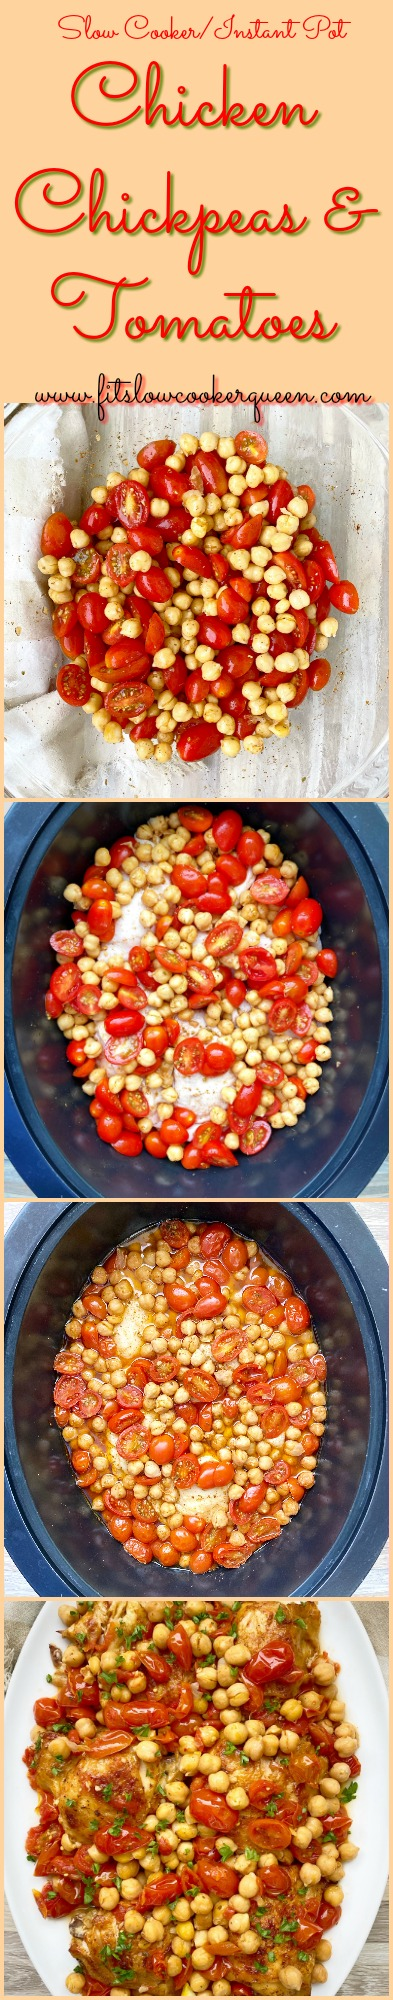 another pinterest pin for cover pic for {VIDEO} Slow CookerInstant Pot Chicken, Chickpeas & Tomatoes